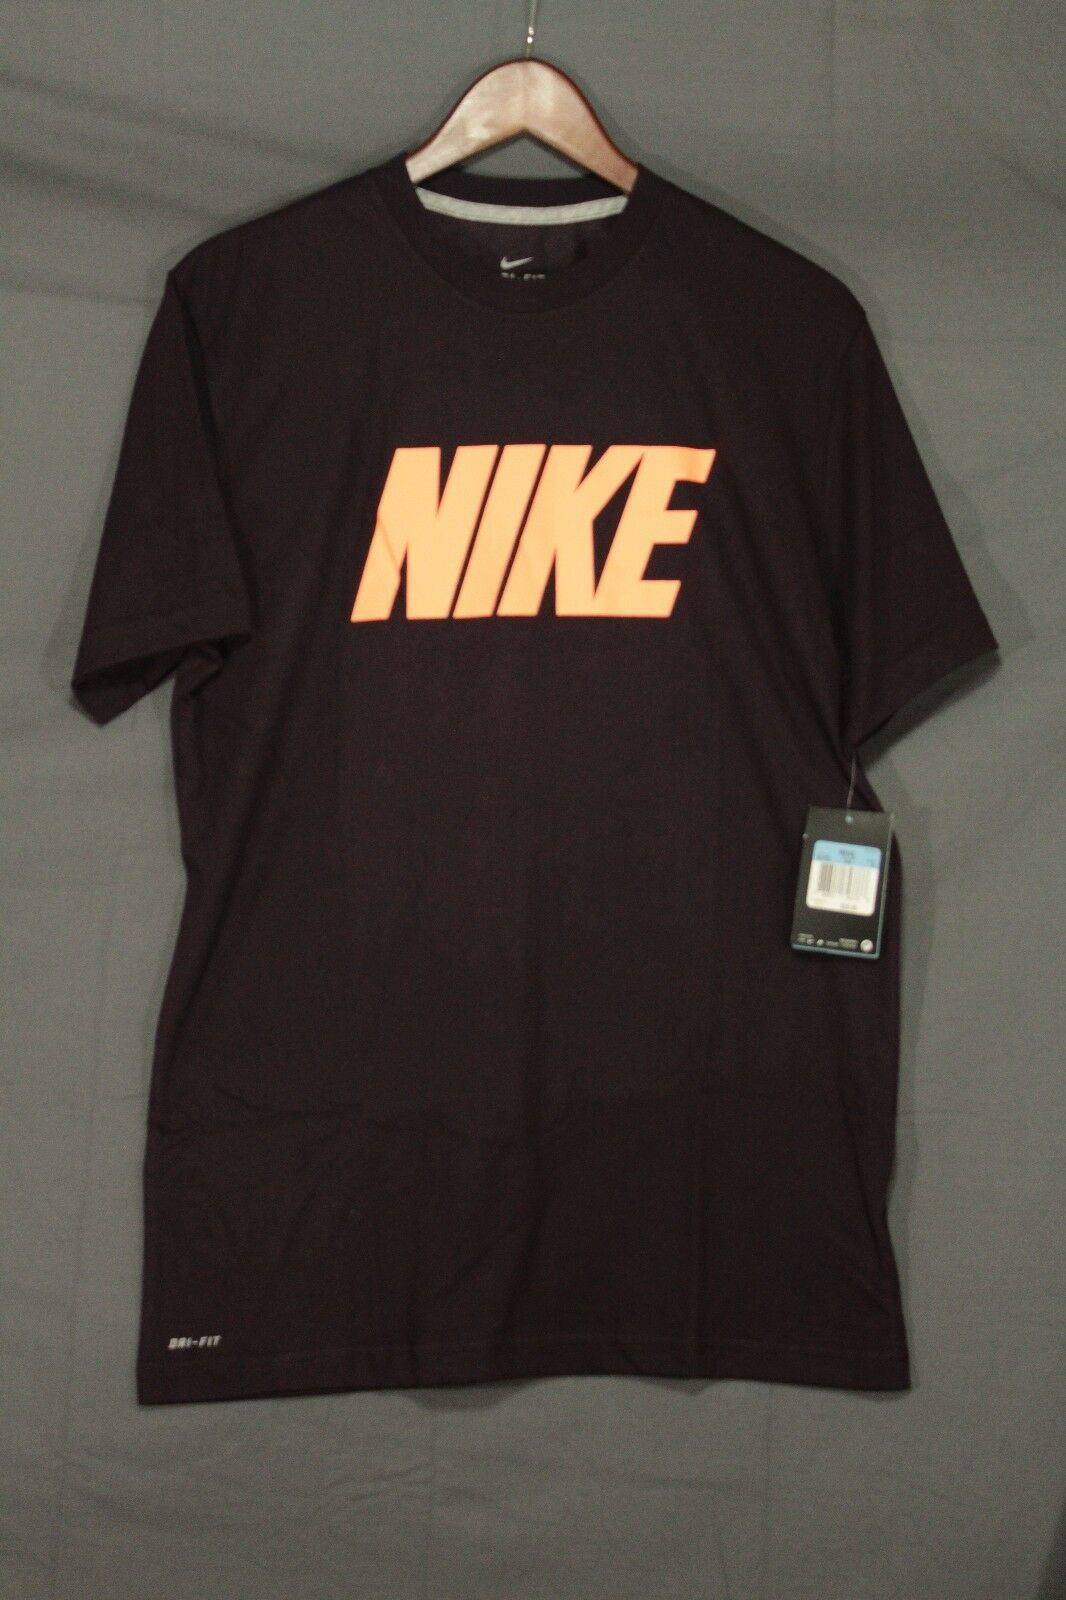 NEW Men's Nike Dri-Fit Vintage Logo Perform Training T-Shirt Burgundy 504732 MED